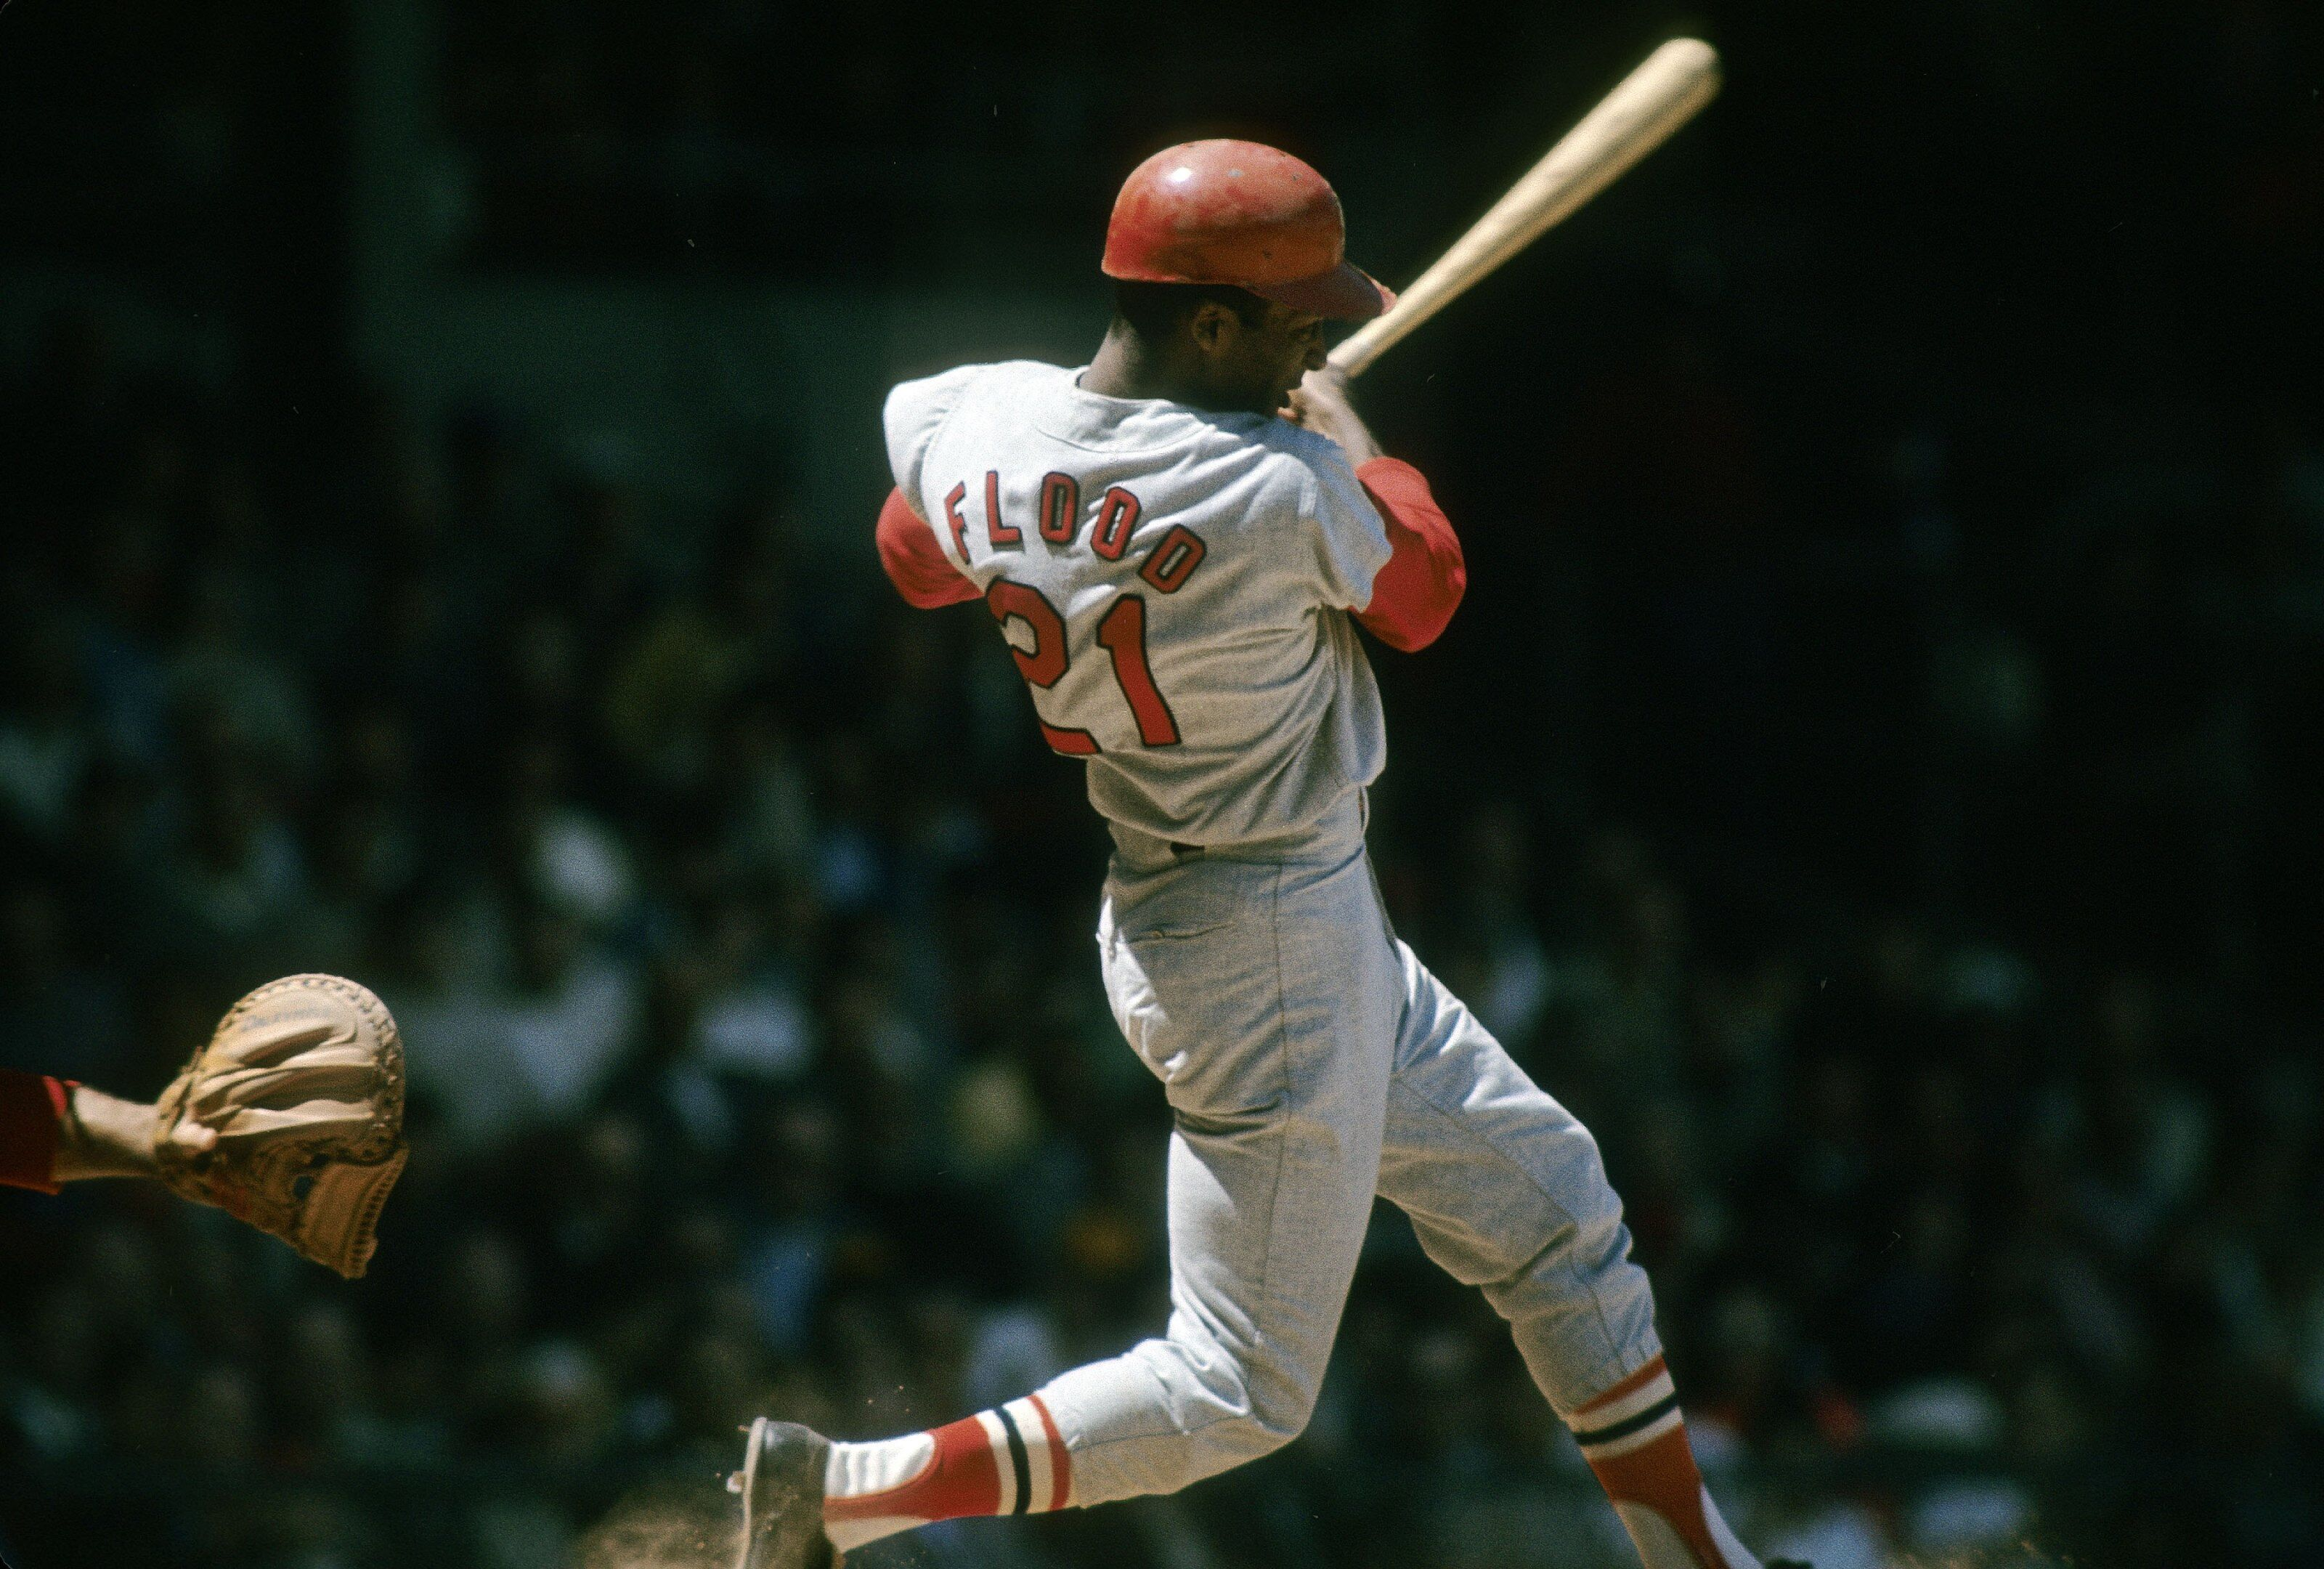 St. Louis Cardinals: Eight things you should know about Curt Flood